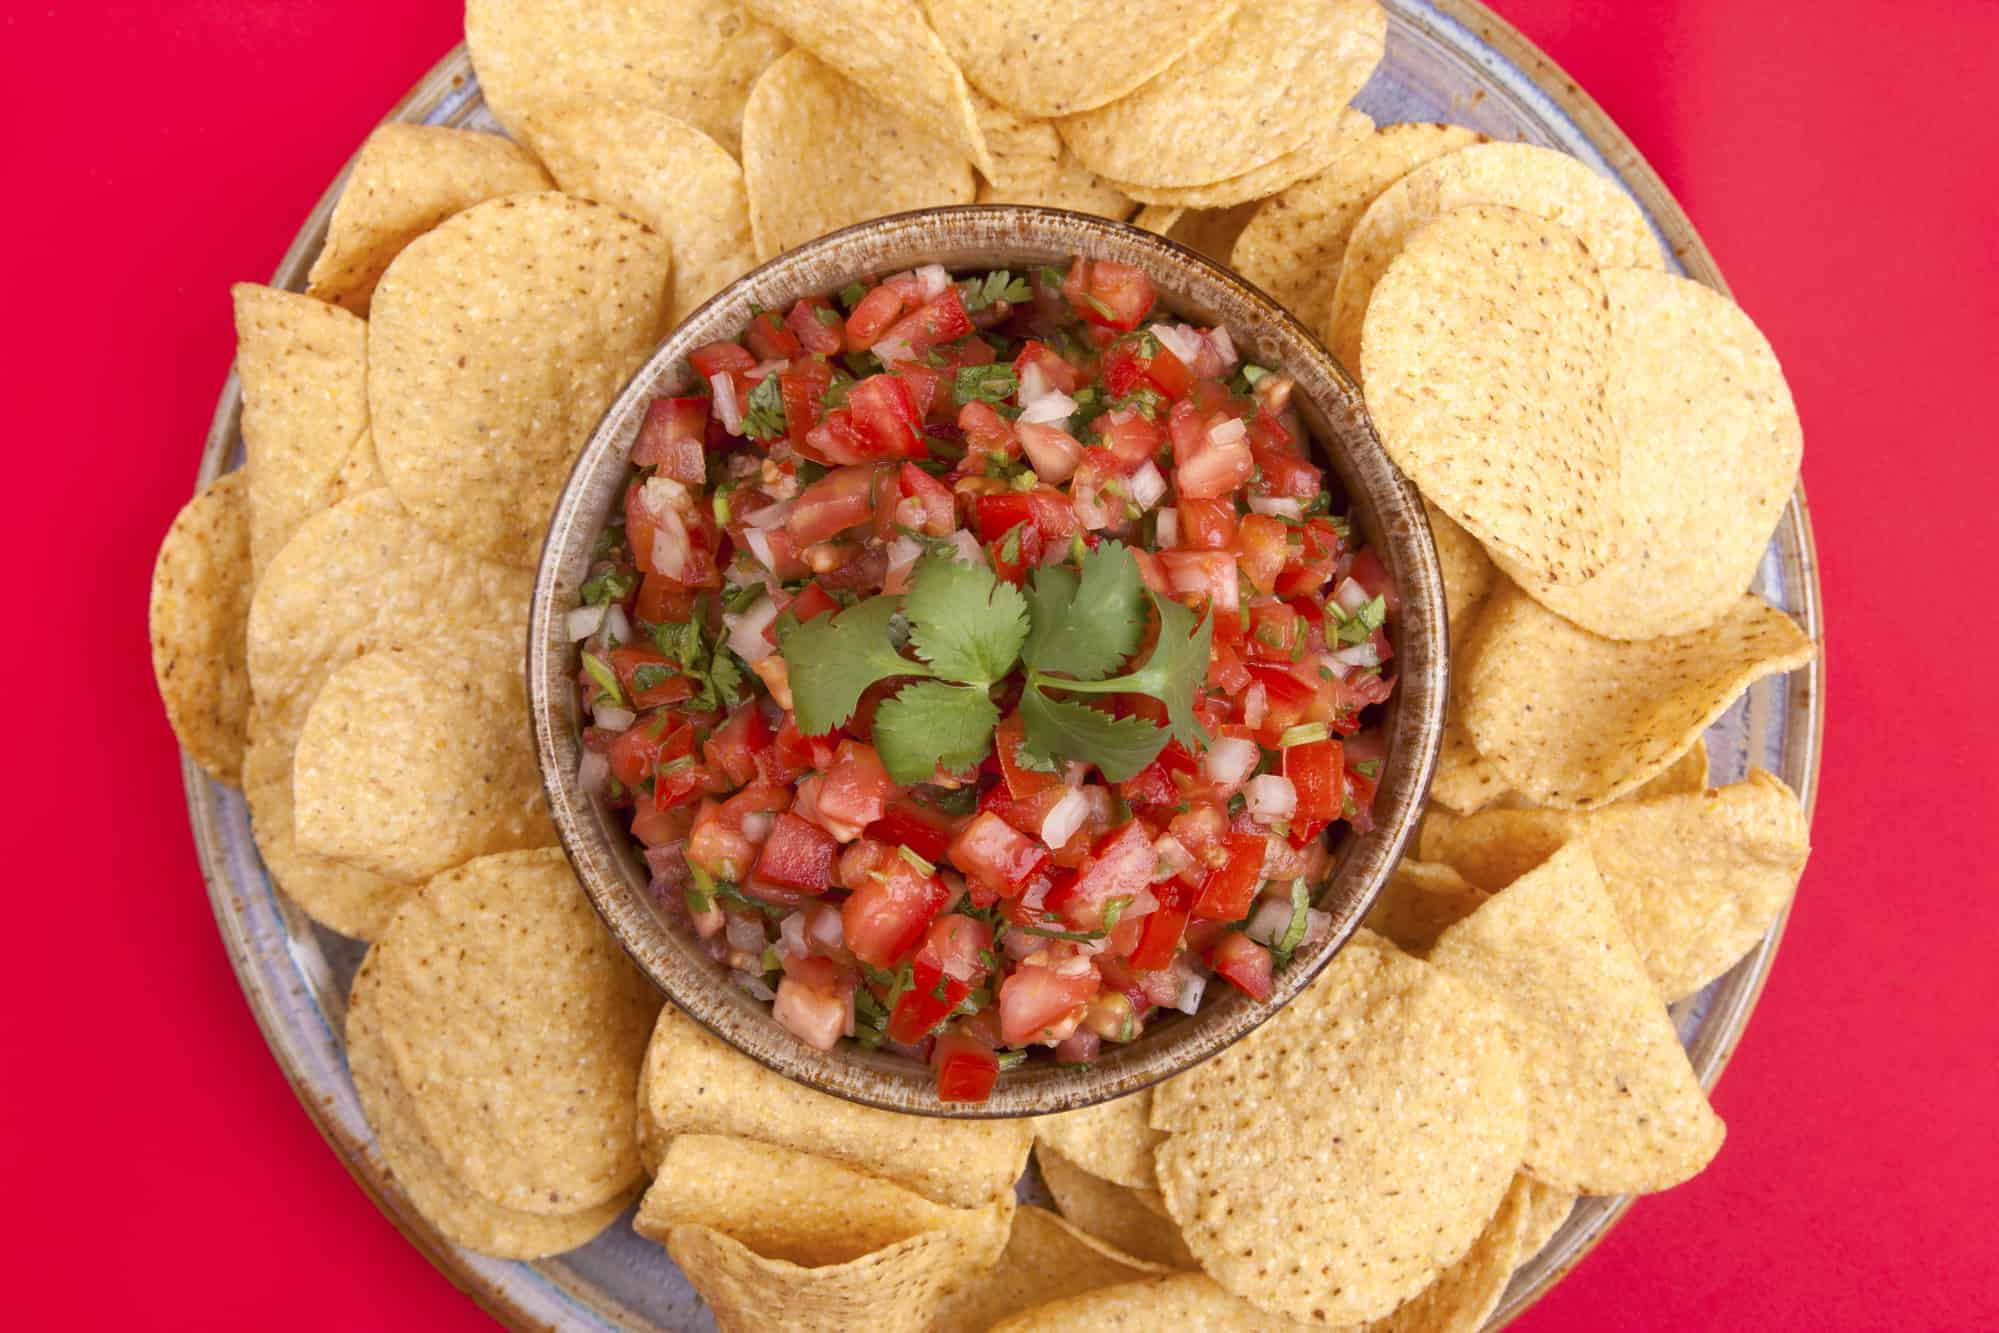 A view from above of chips and homemade salsa